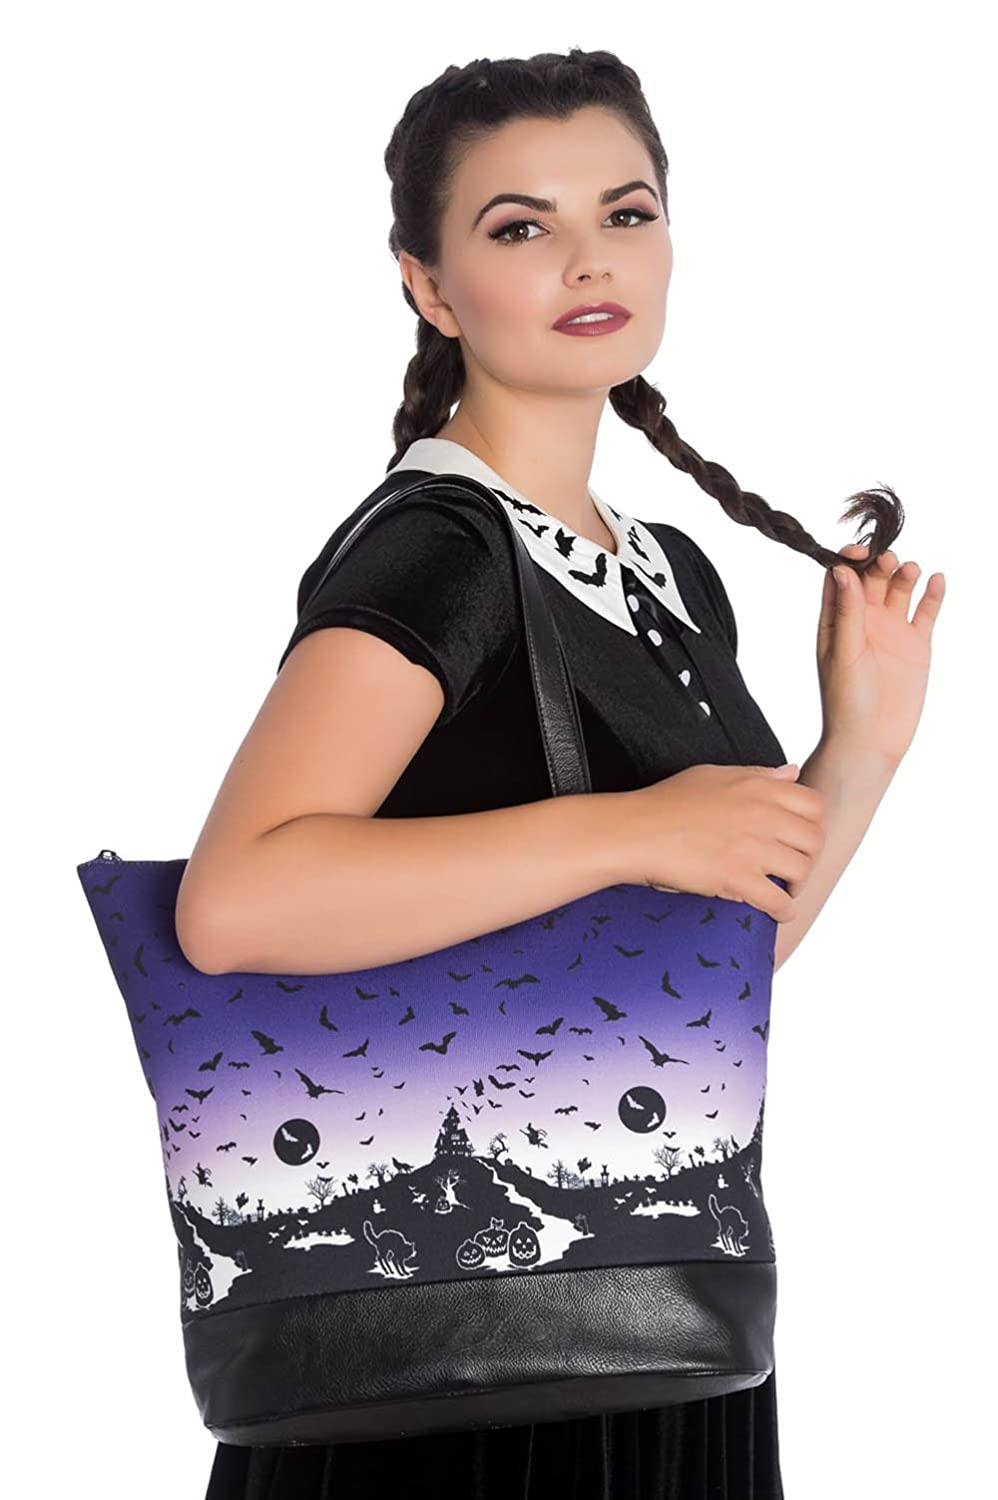 Shopper HAUNT TOTE BAG 7109 purple Violett one size Hell Bunny I2GlCXR